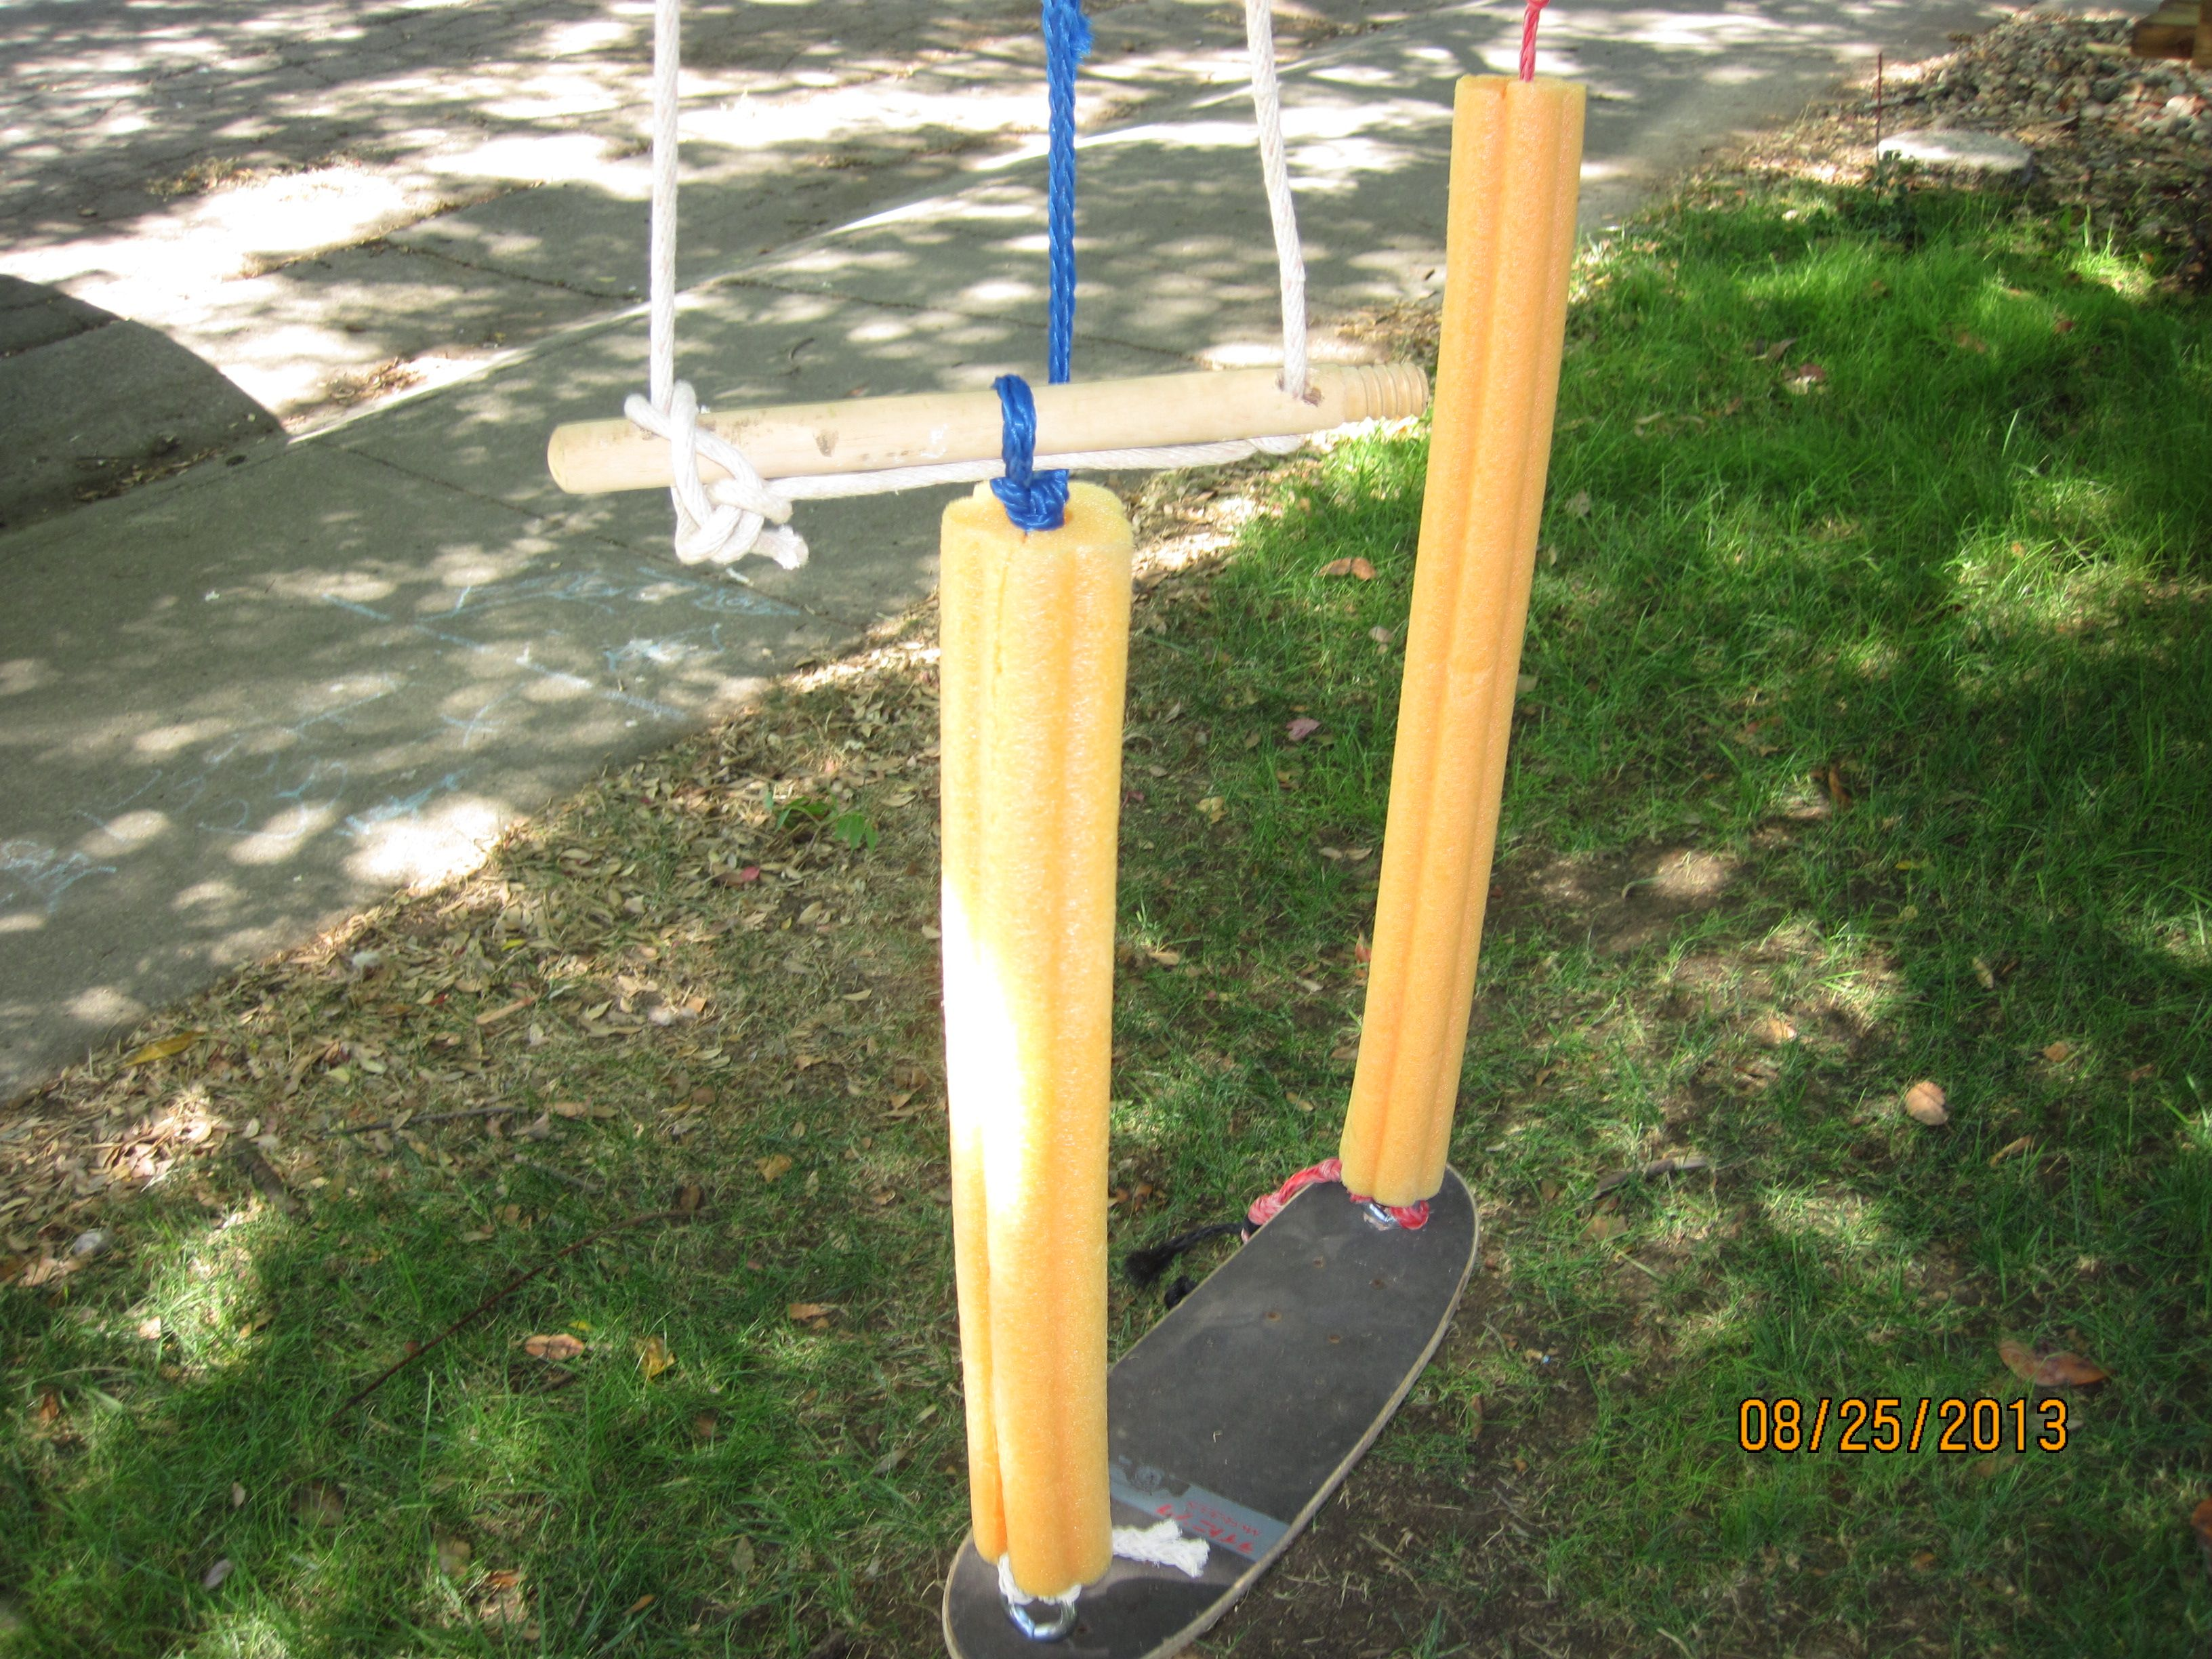 My 4 in 1 swing made